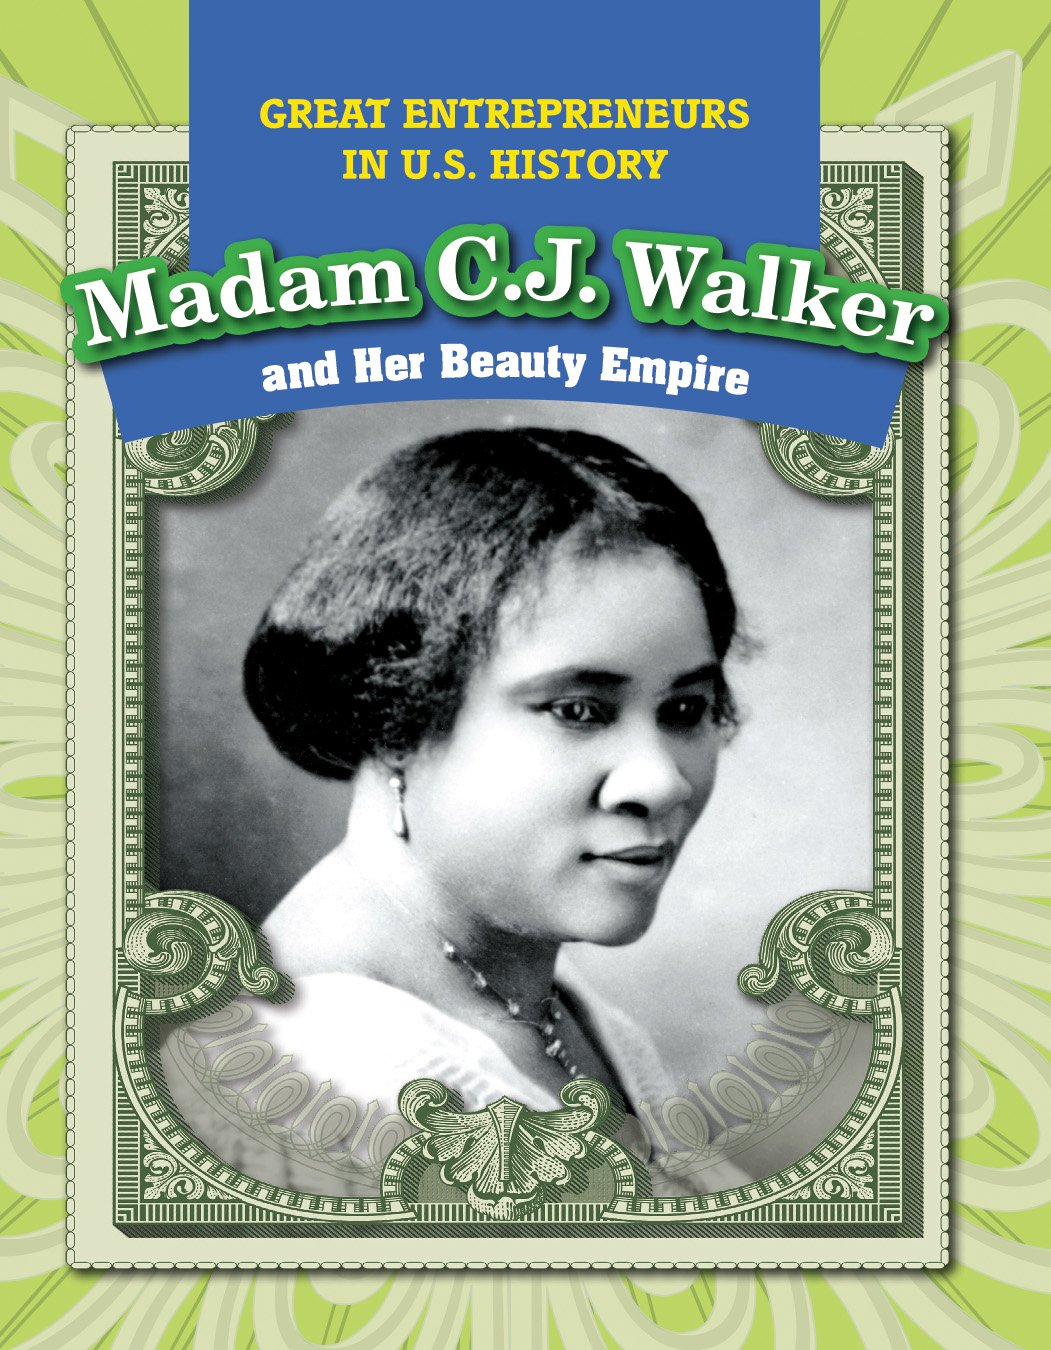 Madam C.J. Walker and Her Beauty Empire (Great Entrepreneurs in U.S. History)